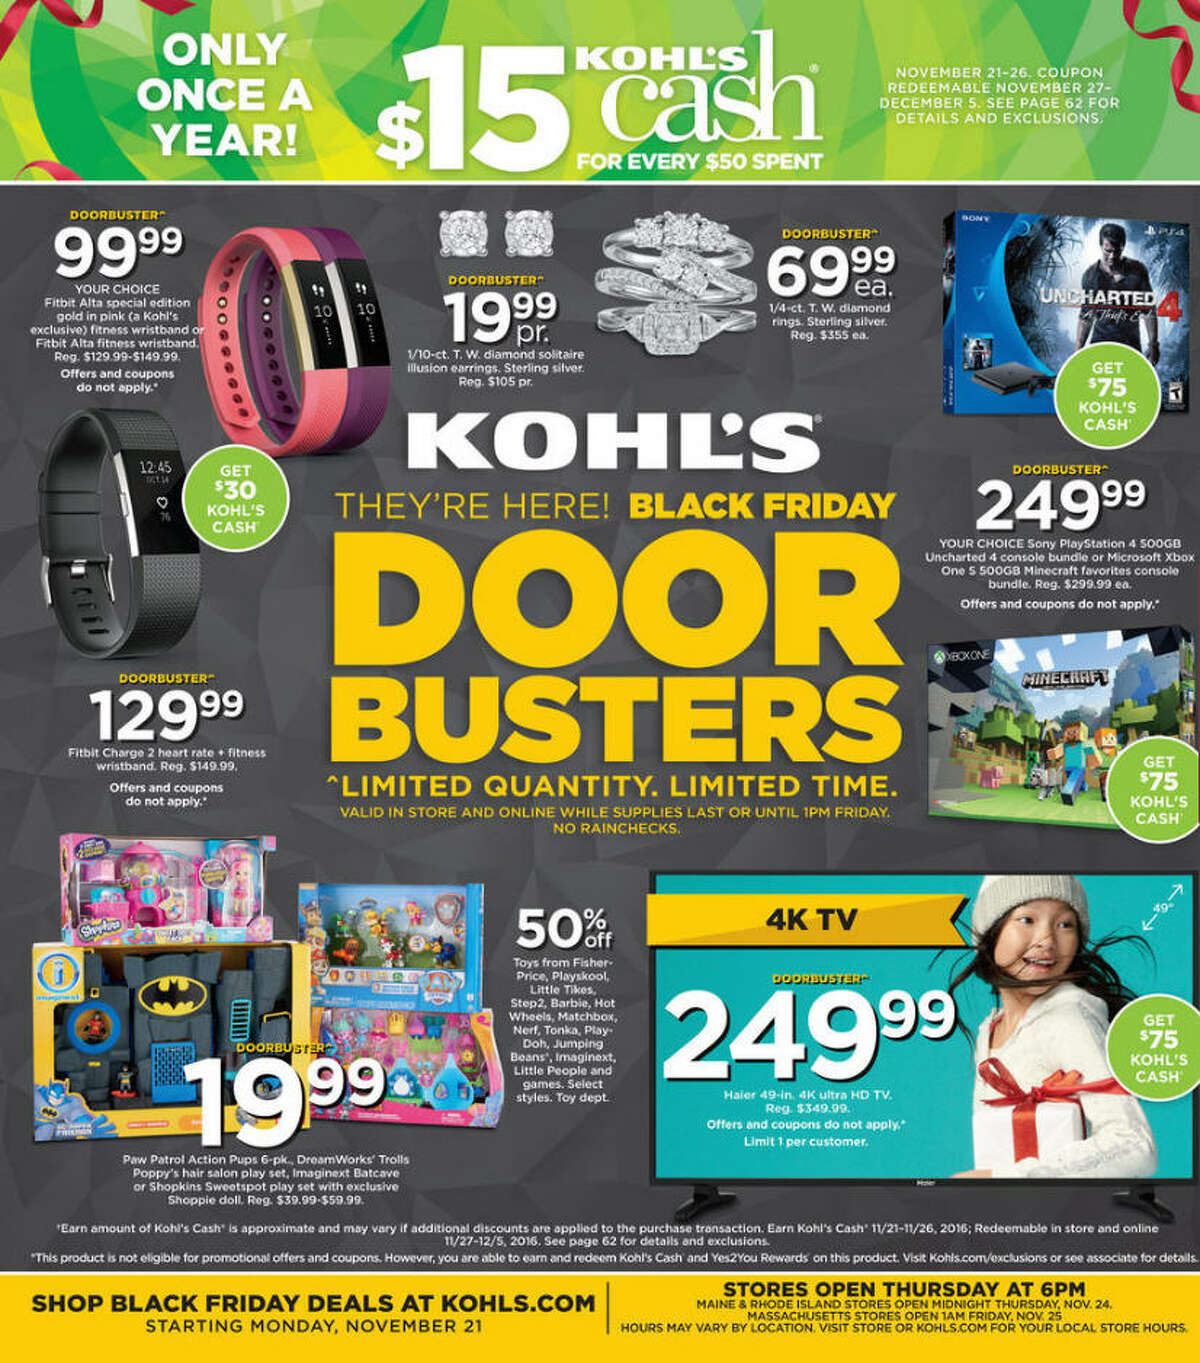 Kohl's has released its 62-page Black Friday 2016 ad circular. Prices and promotion are valid Monday, Nov. 21 through Friday, Nov. 25, 2016 and are subject to change and availability, based on the retailer's determination.